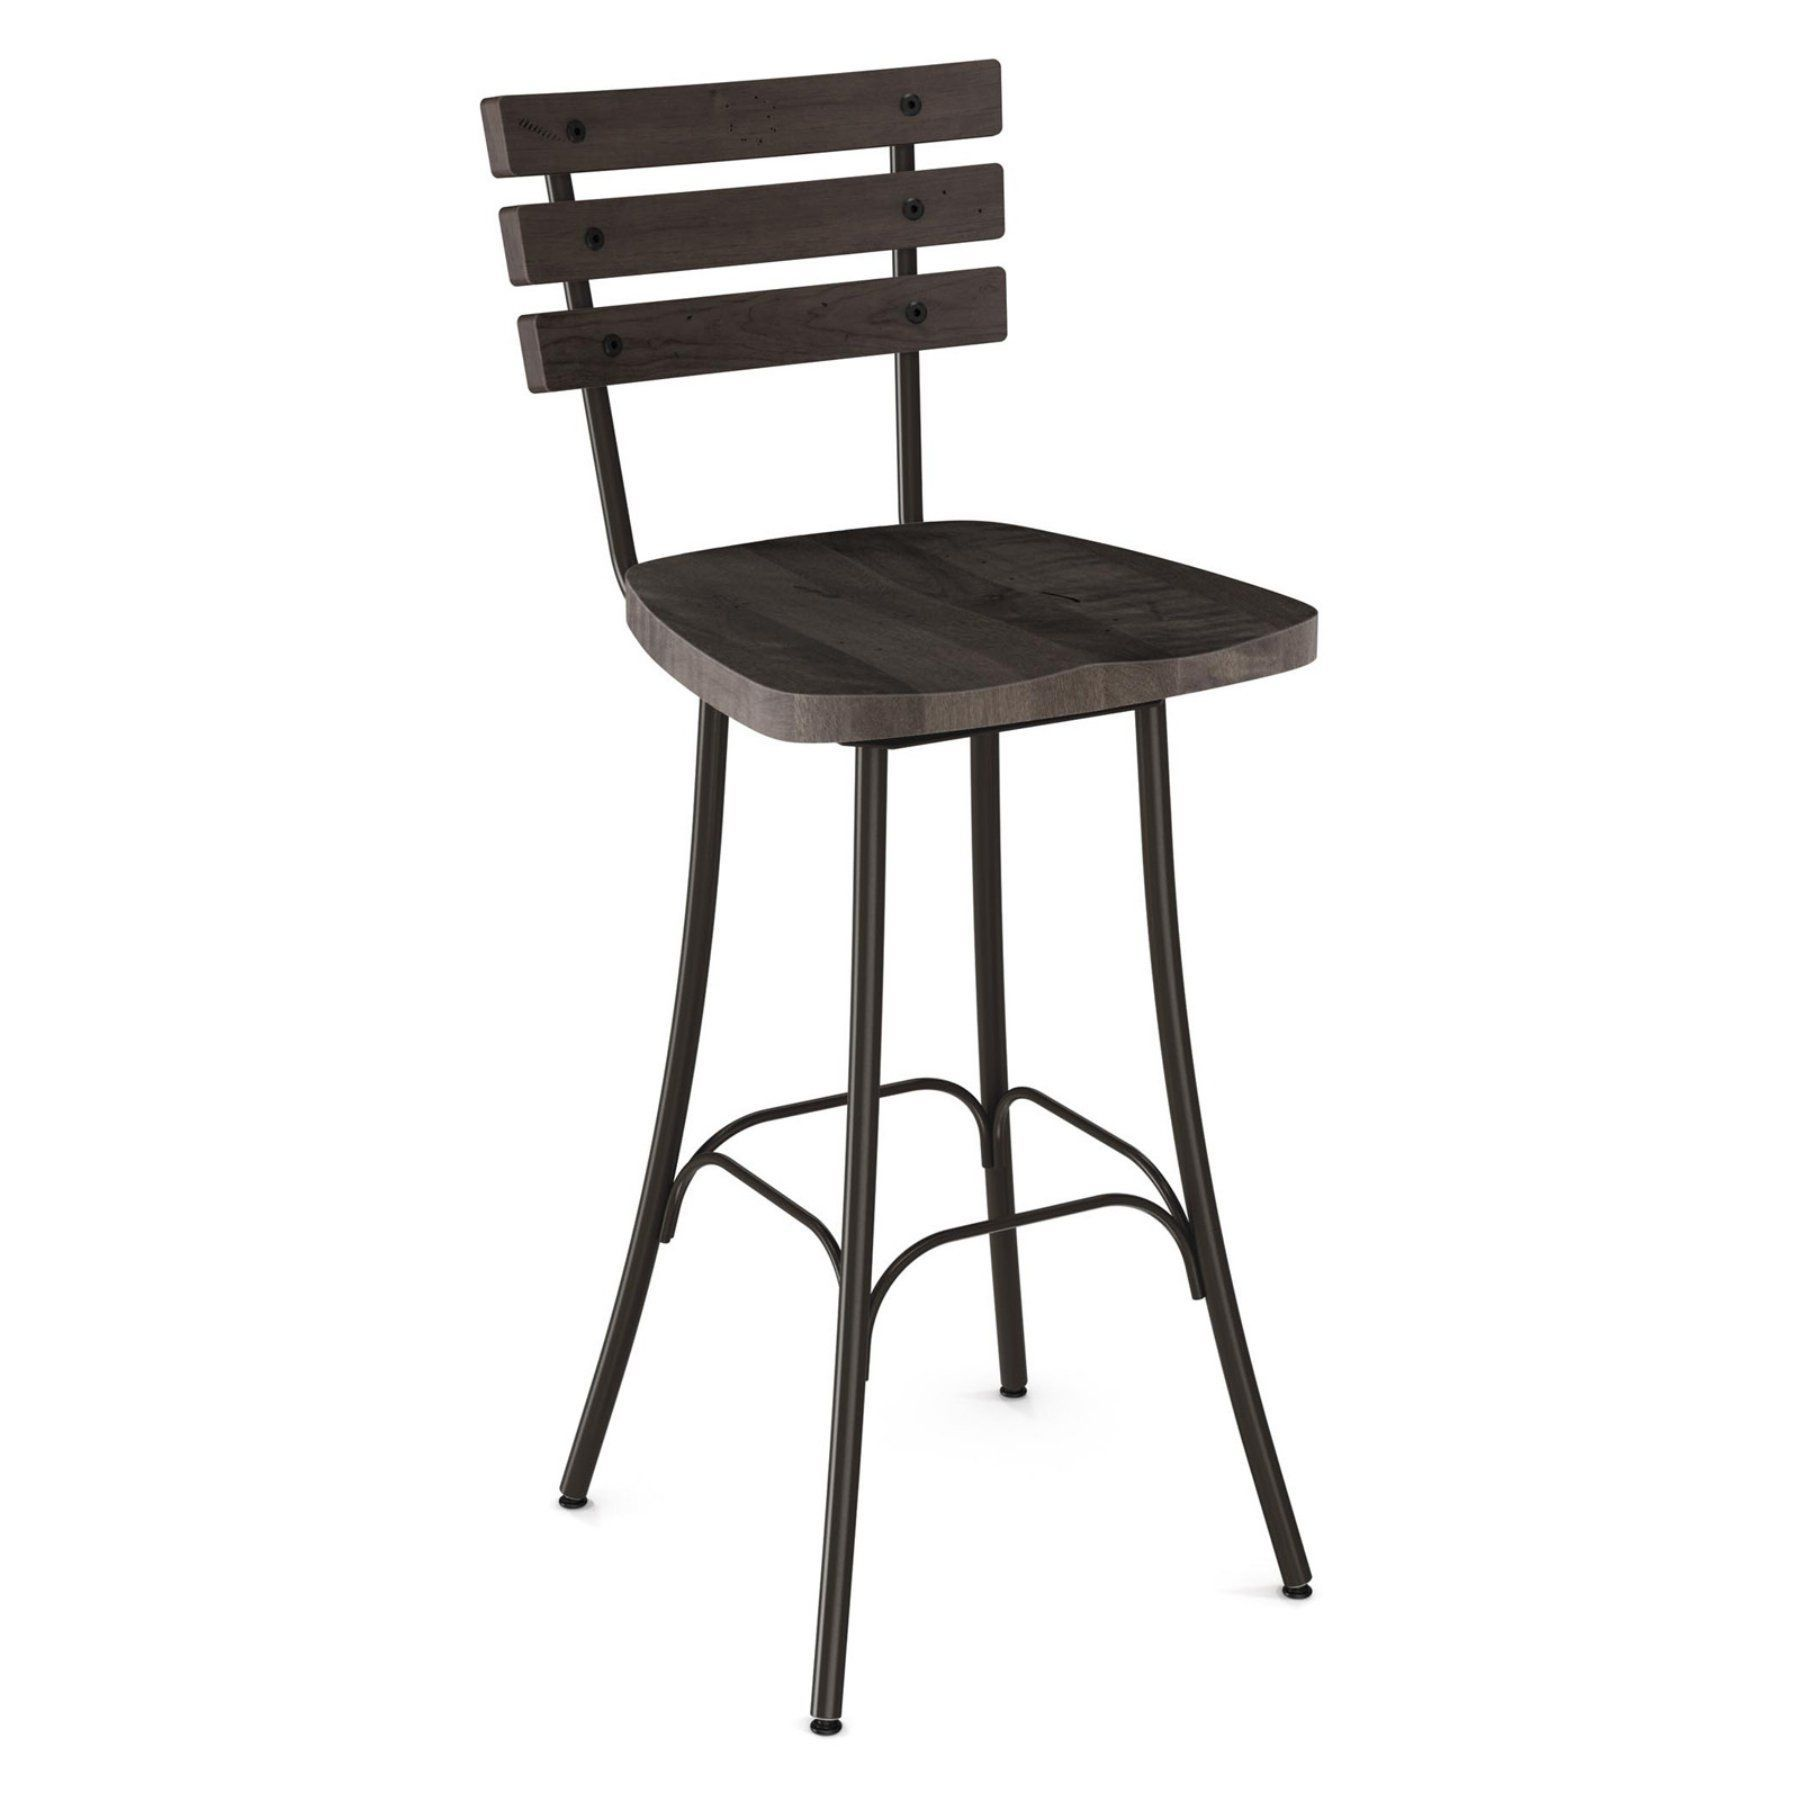 New Amisco Industries Bar Stools